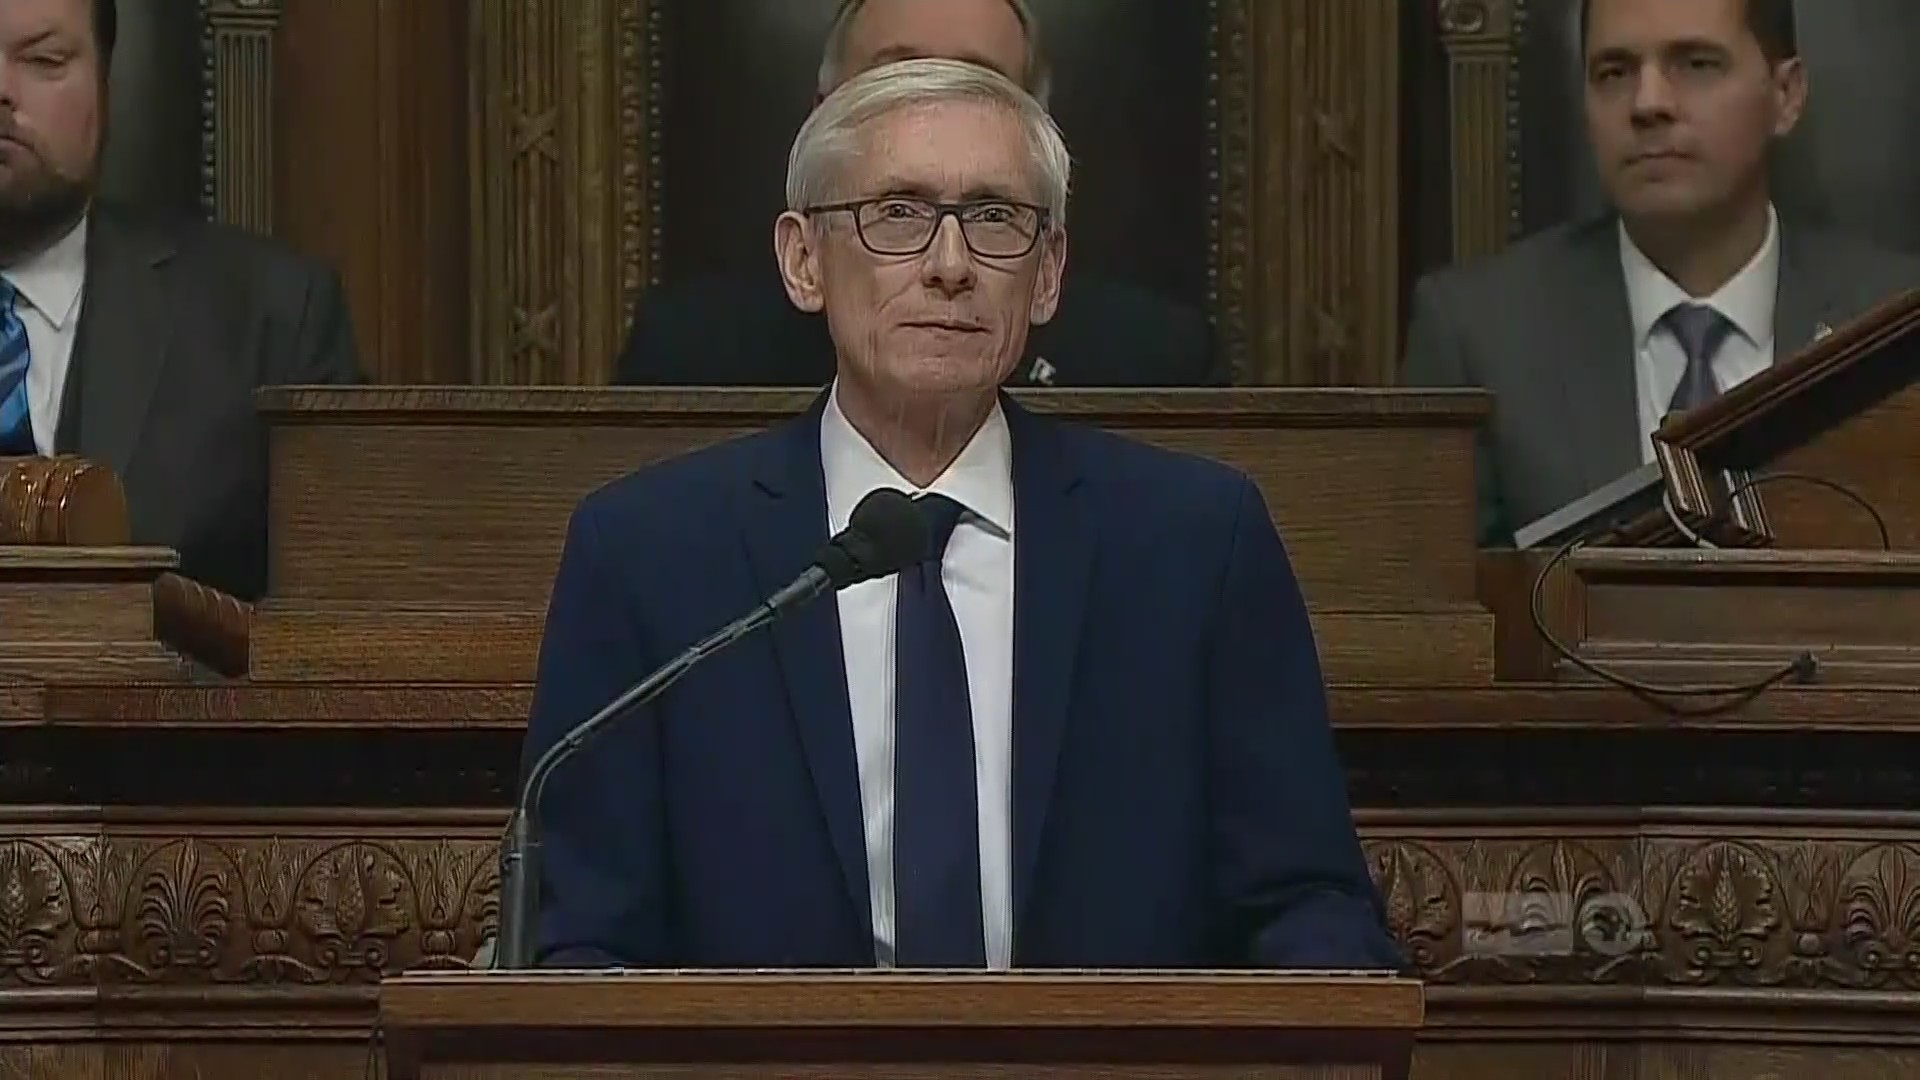 Governor_Evers_Comments_on_Budget_Propos_1_20190302021347